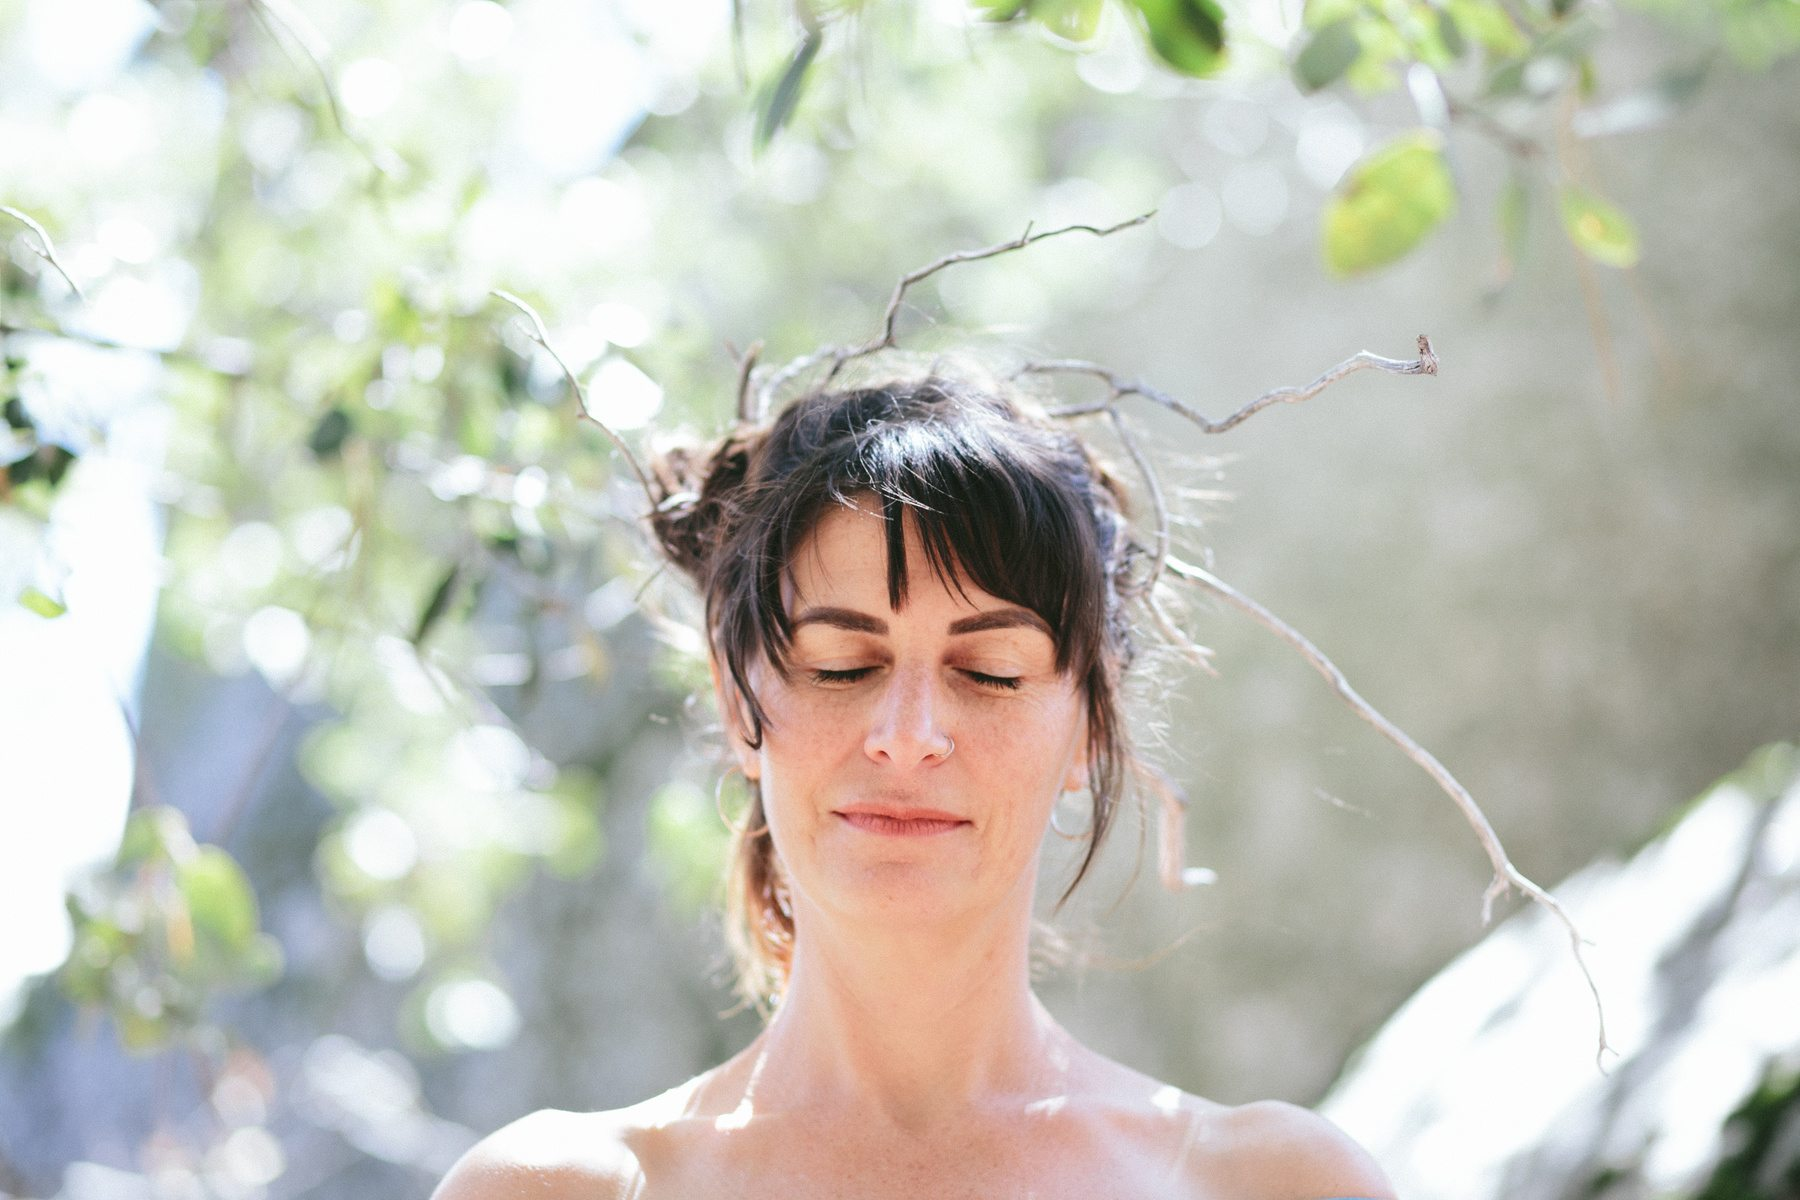 a woman with twigs in her hair, alive